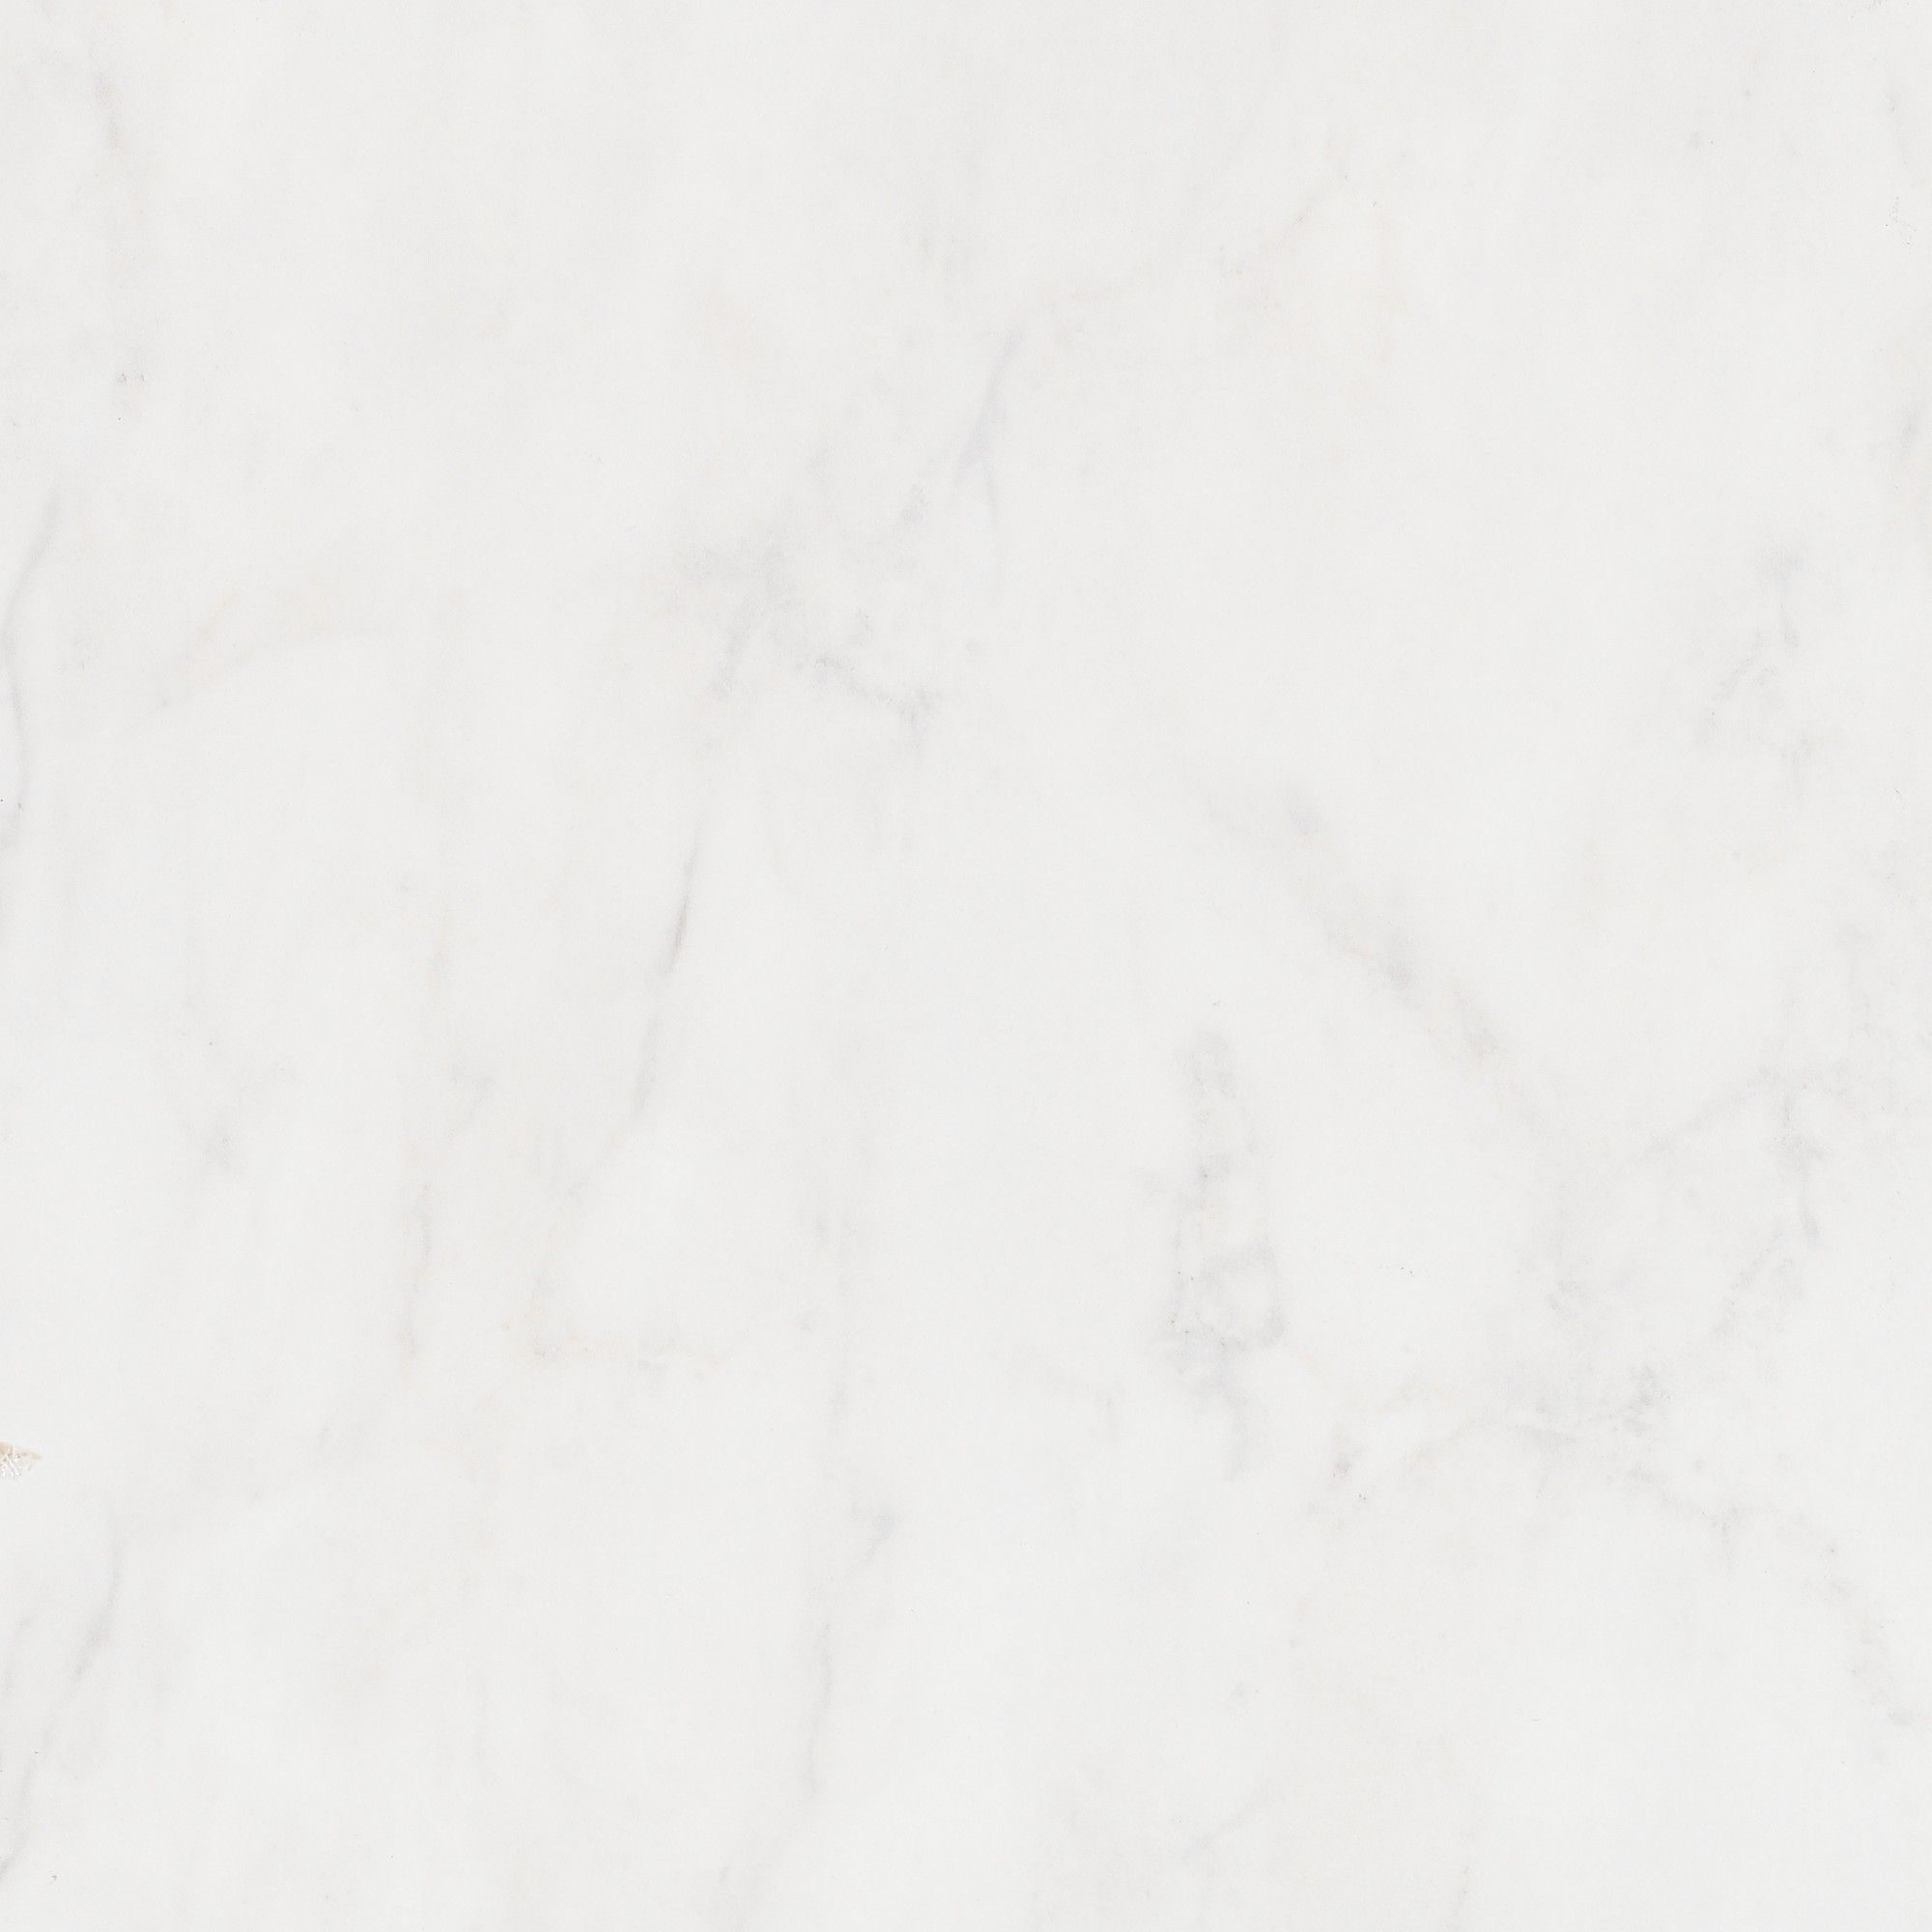 Elegance White Gloss Marble Effect Ceramic Floor Tile: Carrara And Calcutta Marbles Were Prized By The Ancient